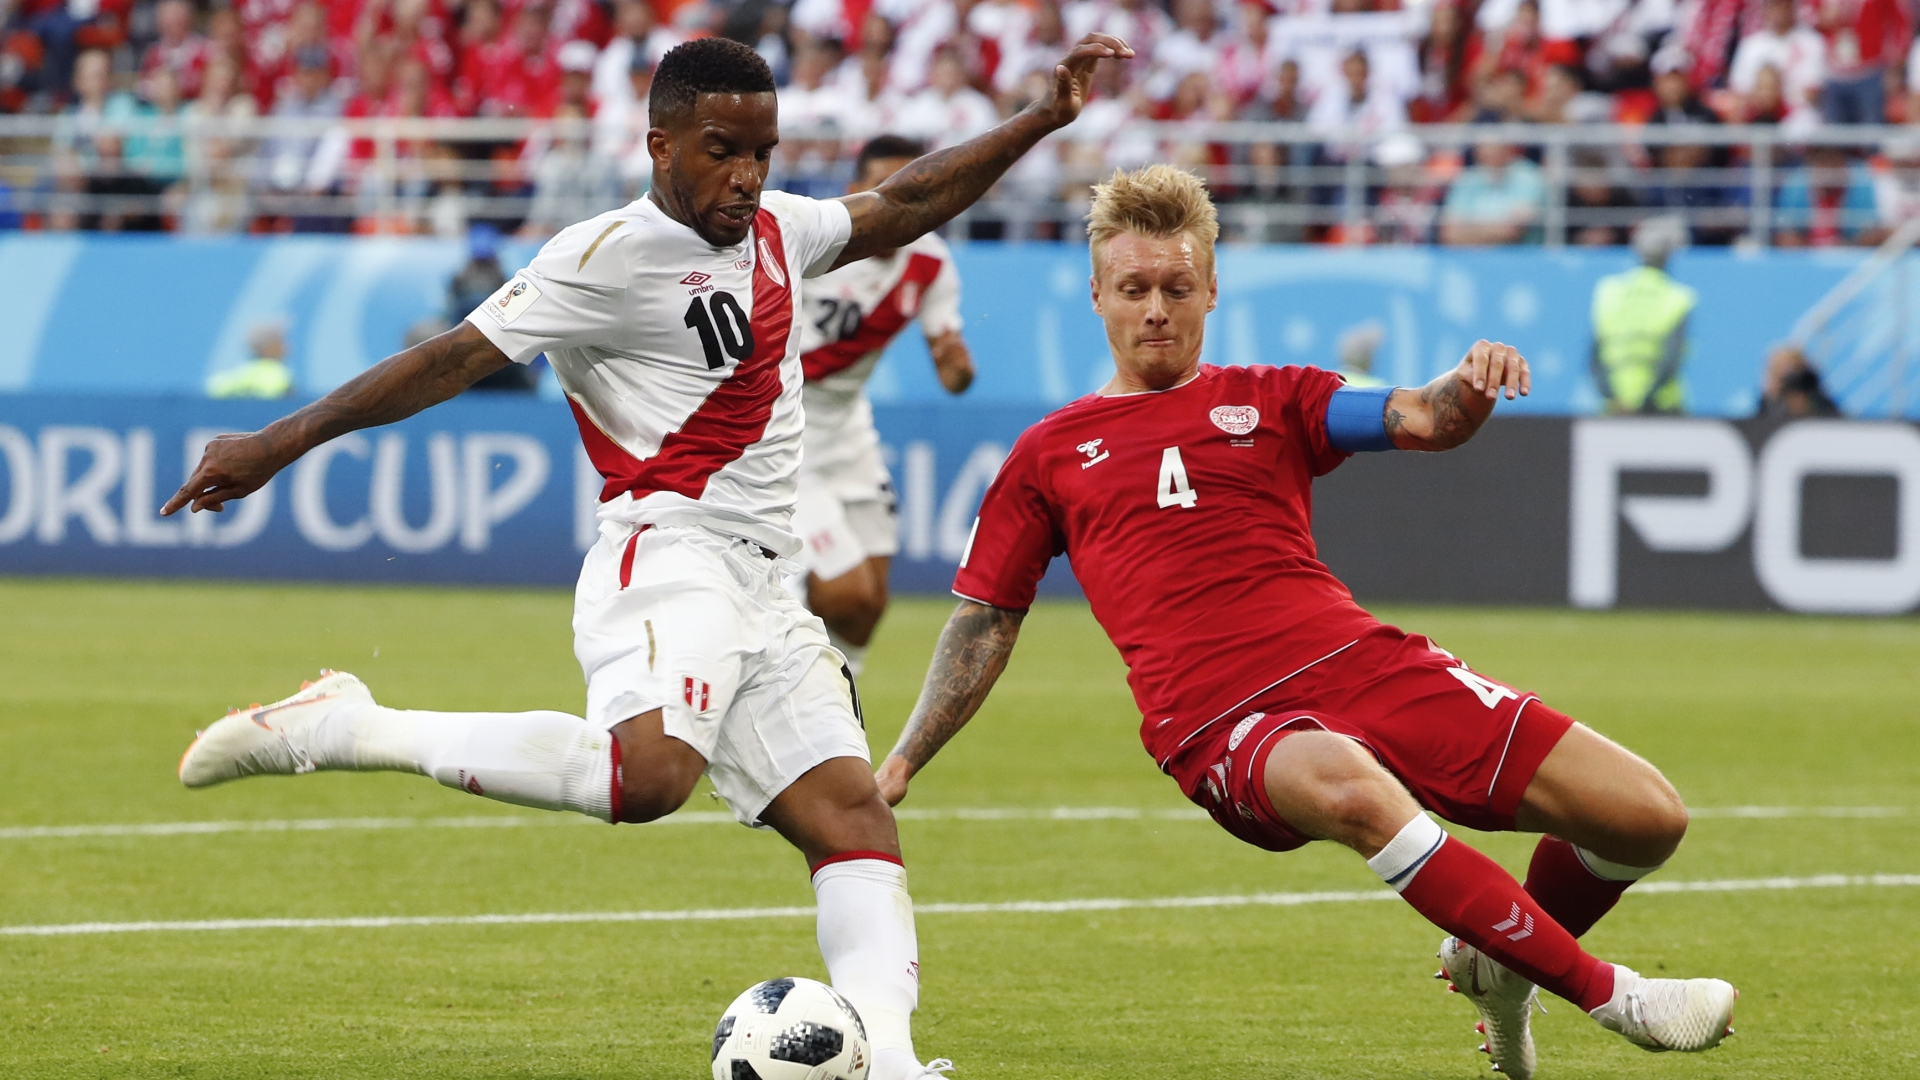 Peru Vs Denmark Live Blog Text Commentary Line Ups